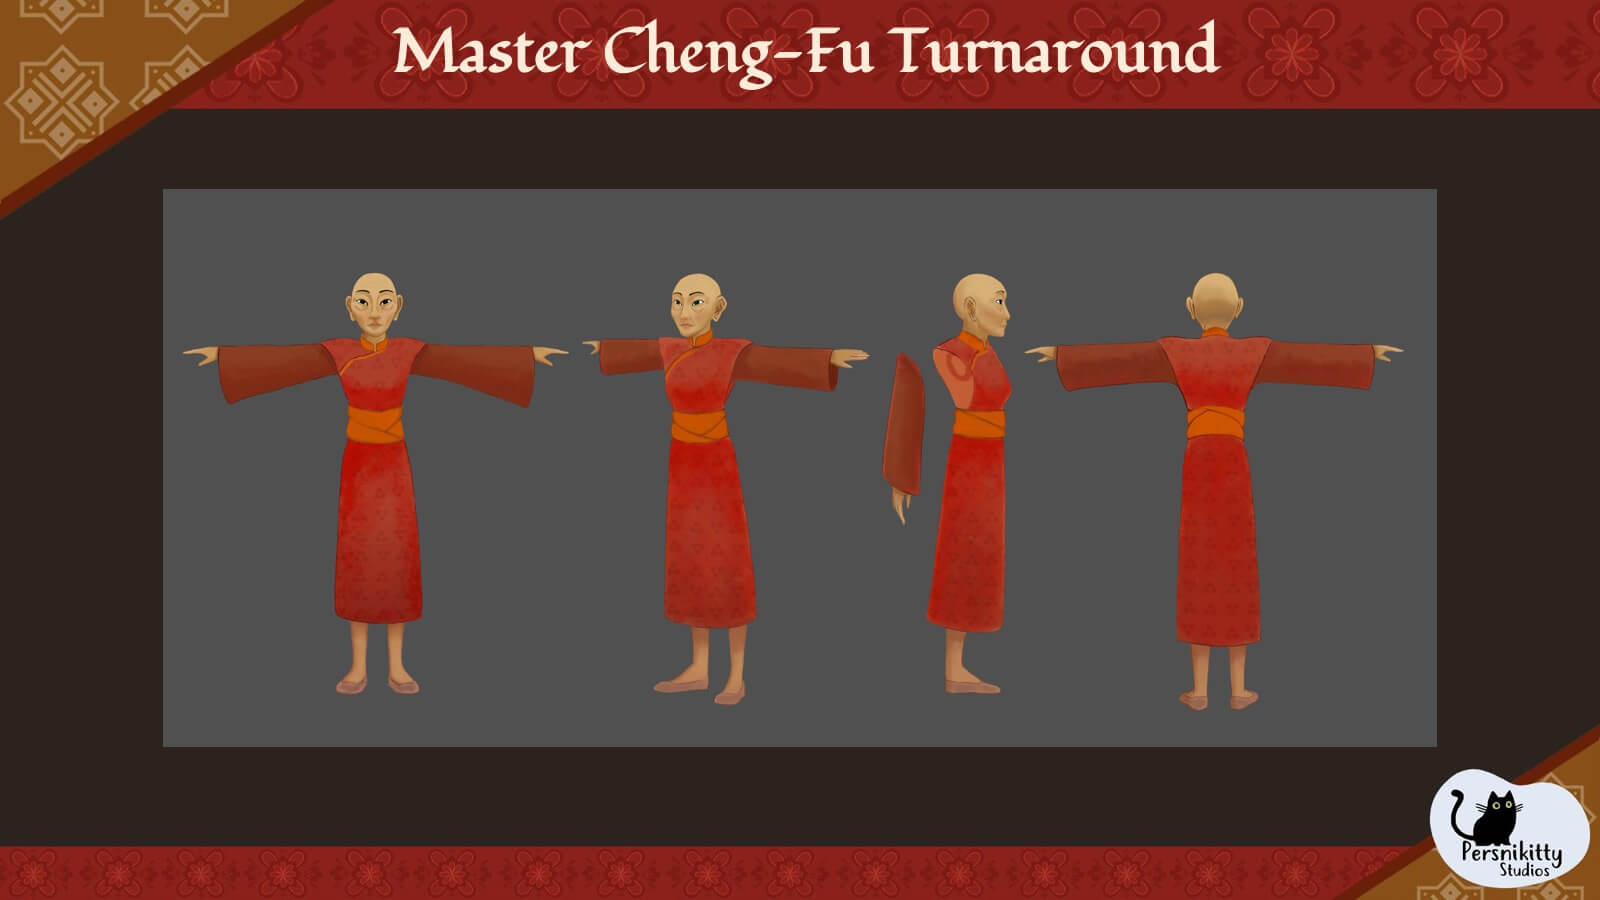 A slide with a turnaround of the character model for Master Cheng-Fu.